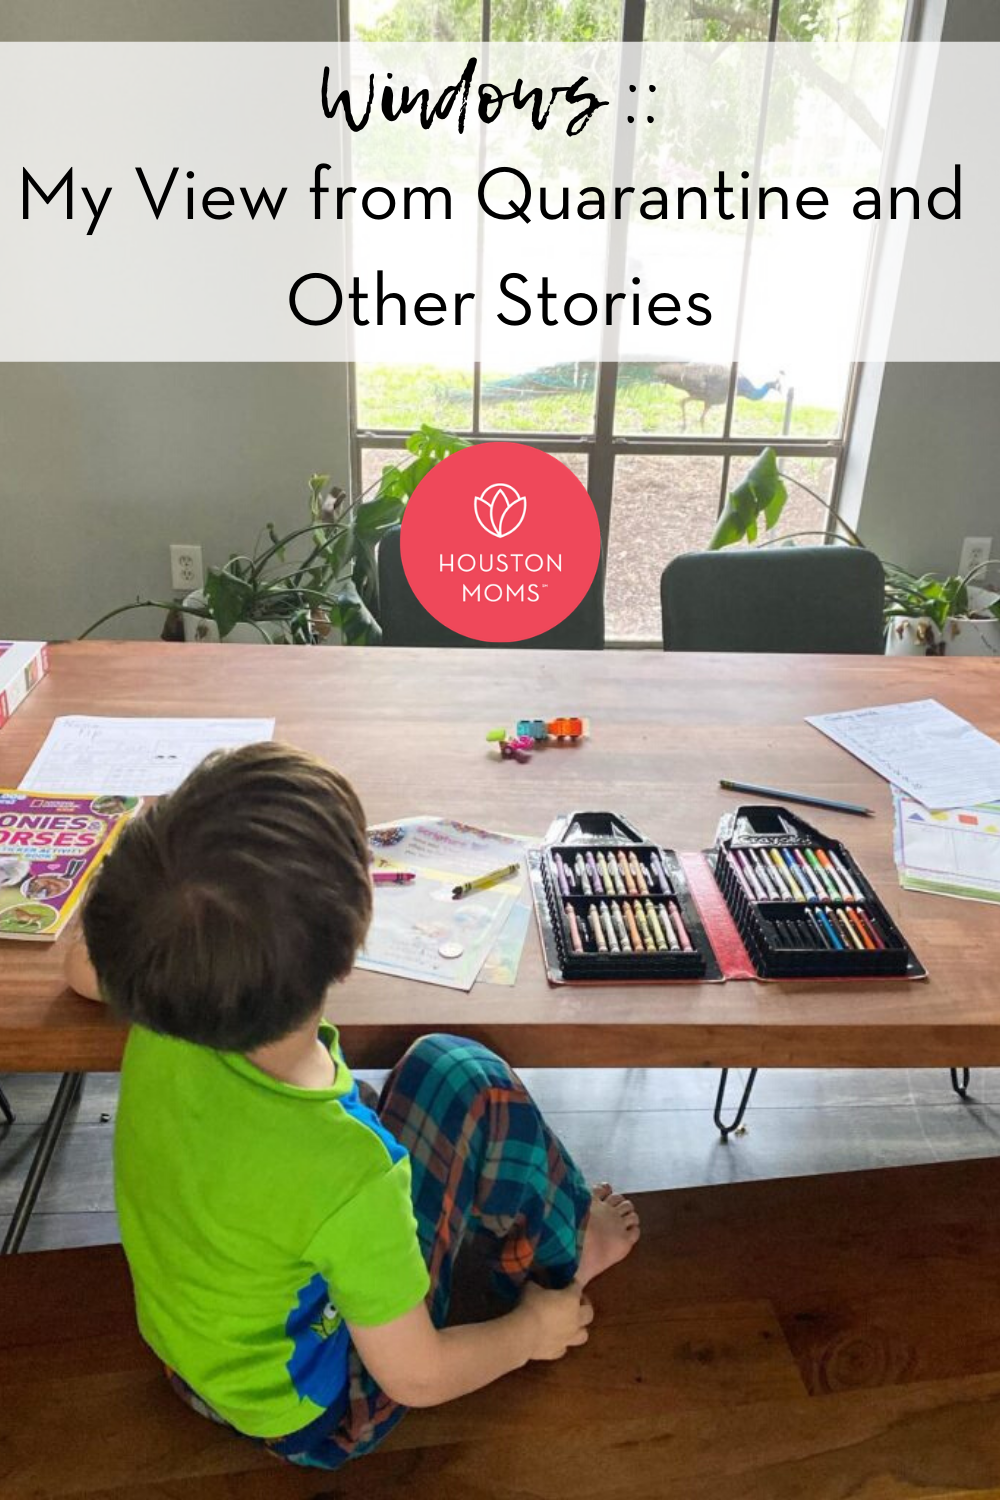 "Houston Moms ""Windows:: My View from Quarantine and Other Stories"" #houstonmoms #houstonmomsblog #momsaroundhouston"